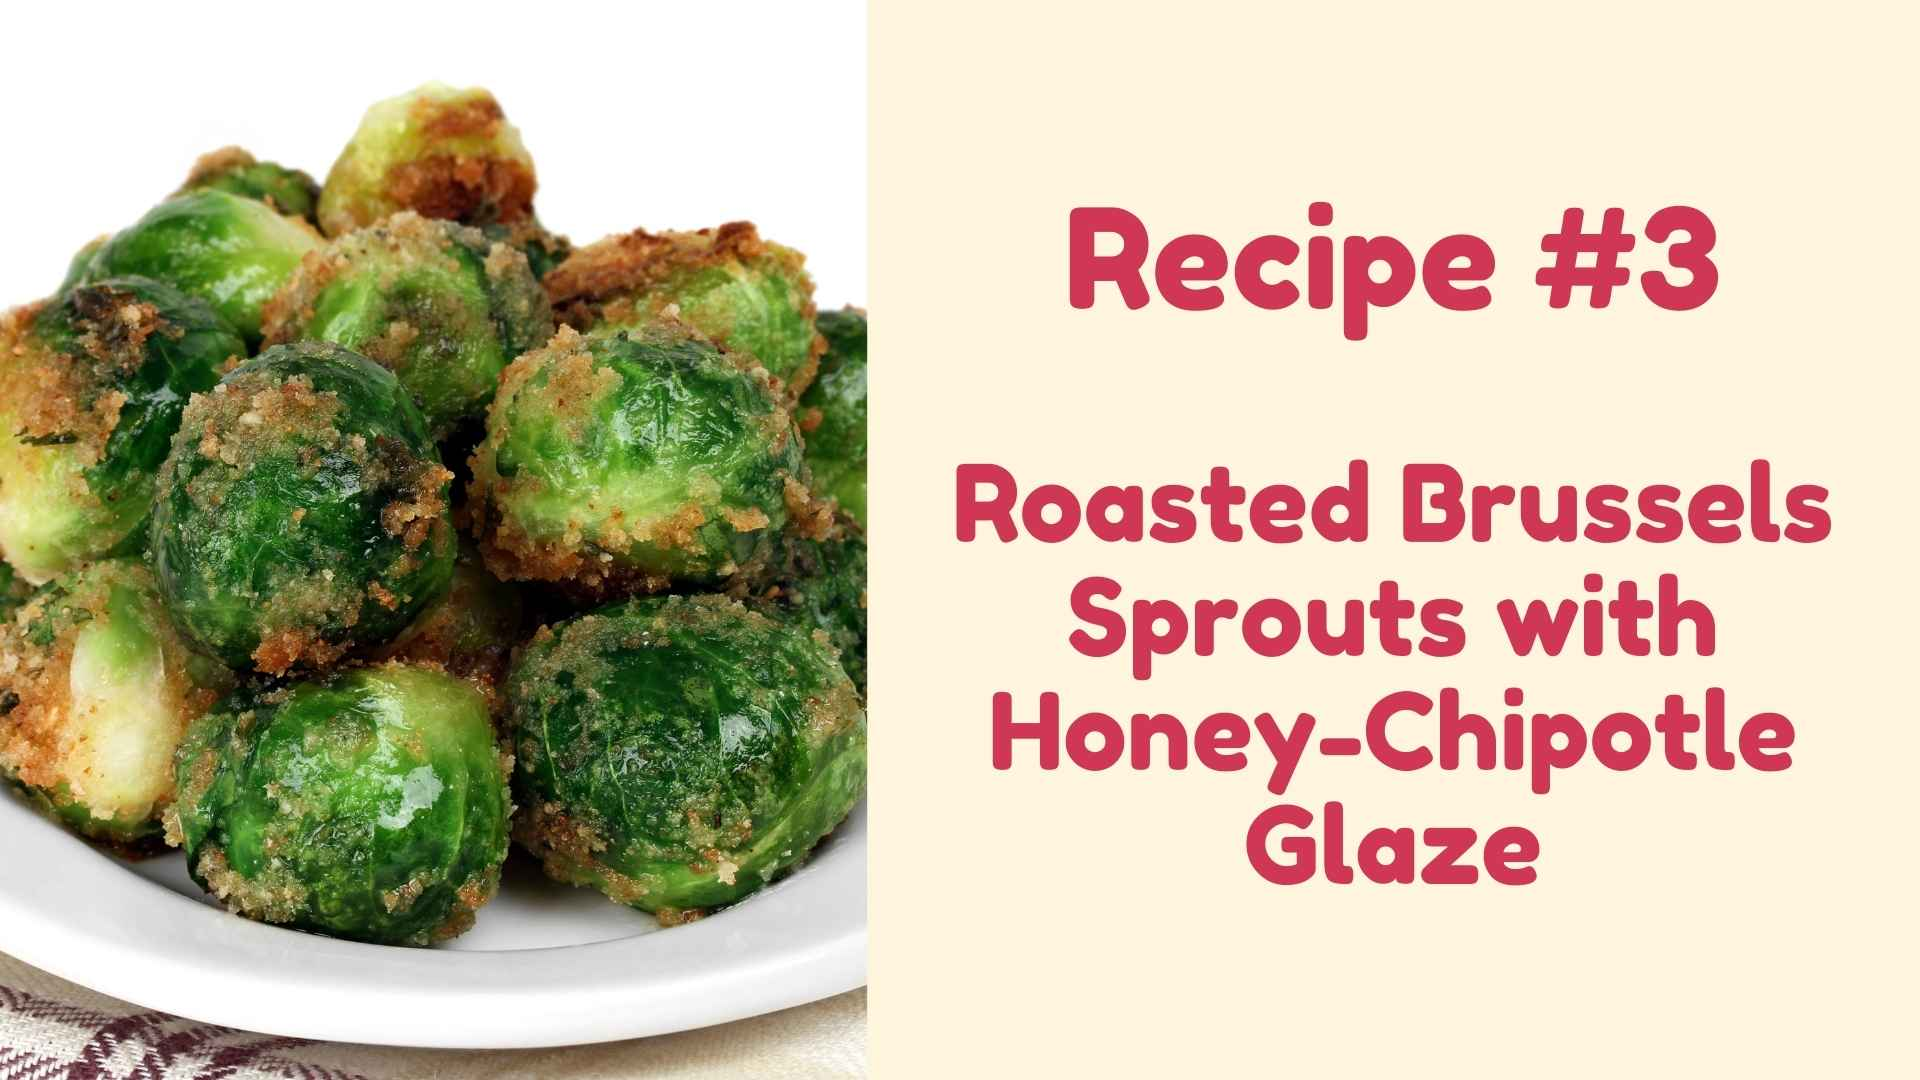 Recipe #3 Roasted Brussels Sprouts with Honey-Chipotle Glaze